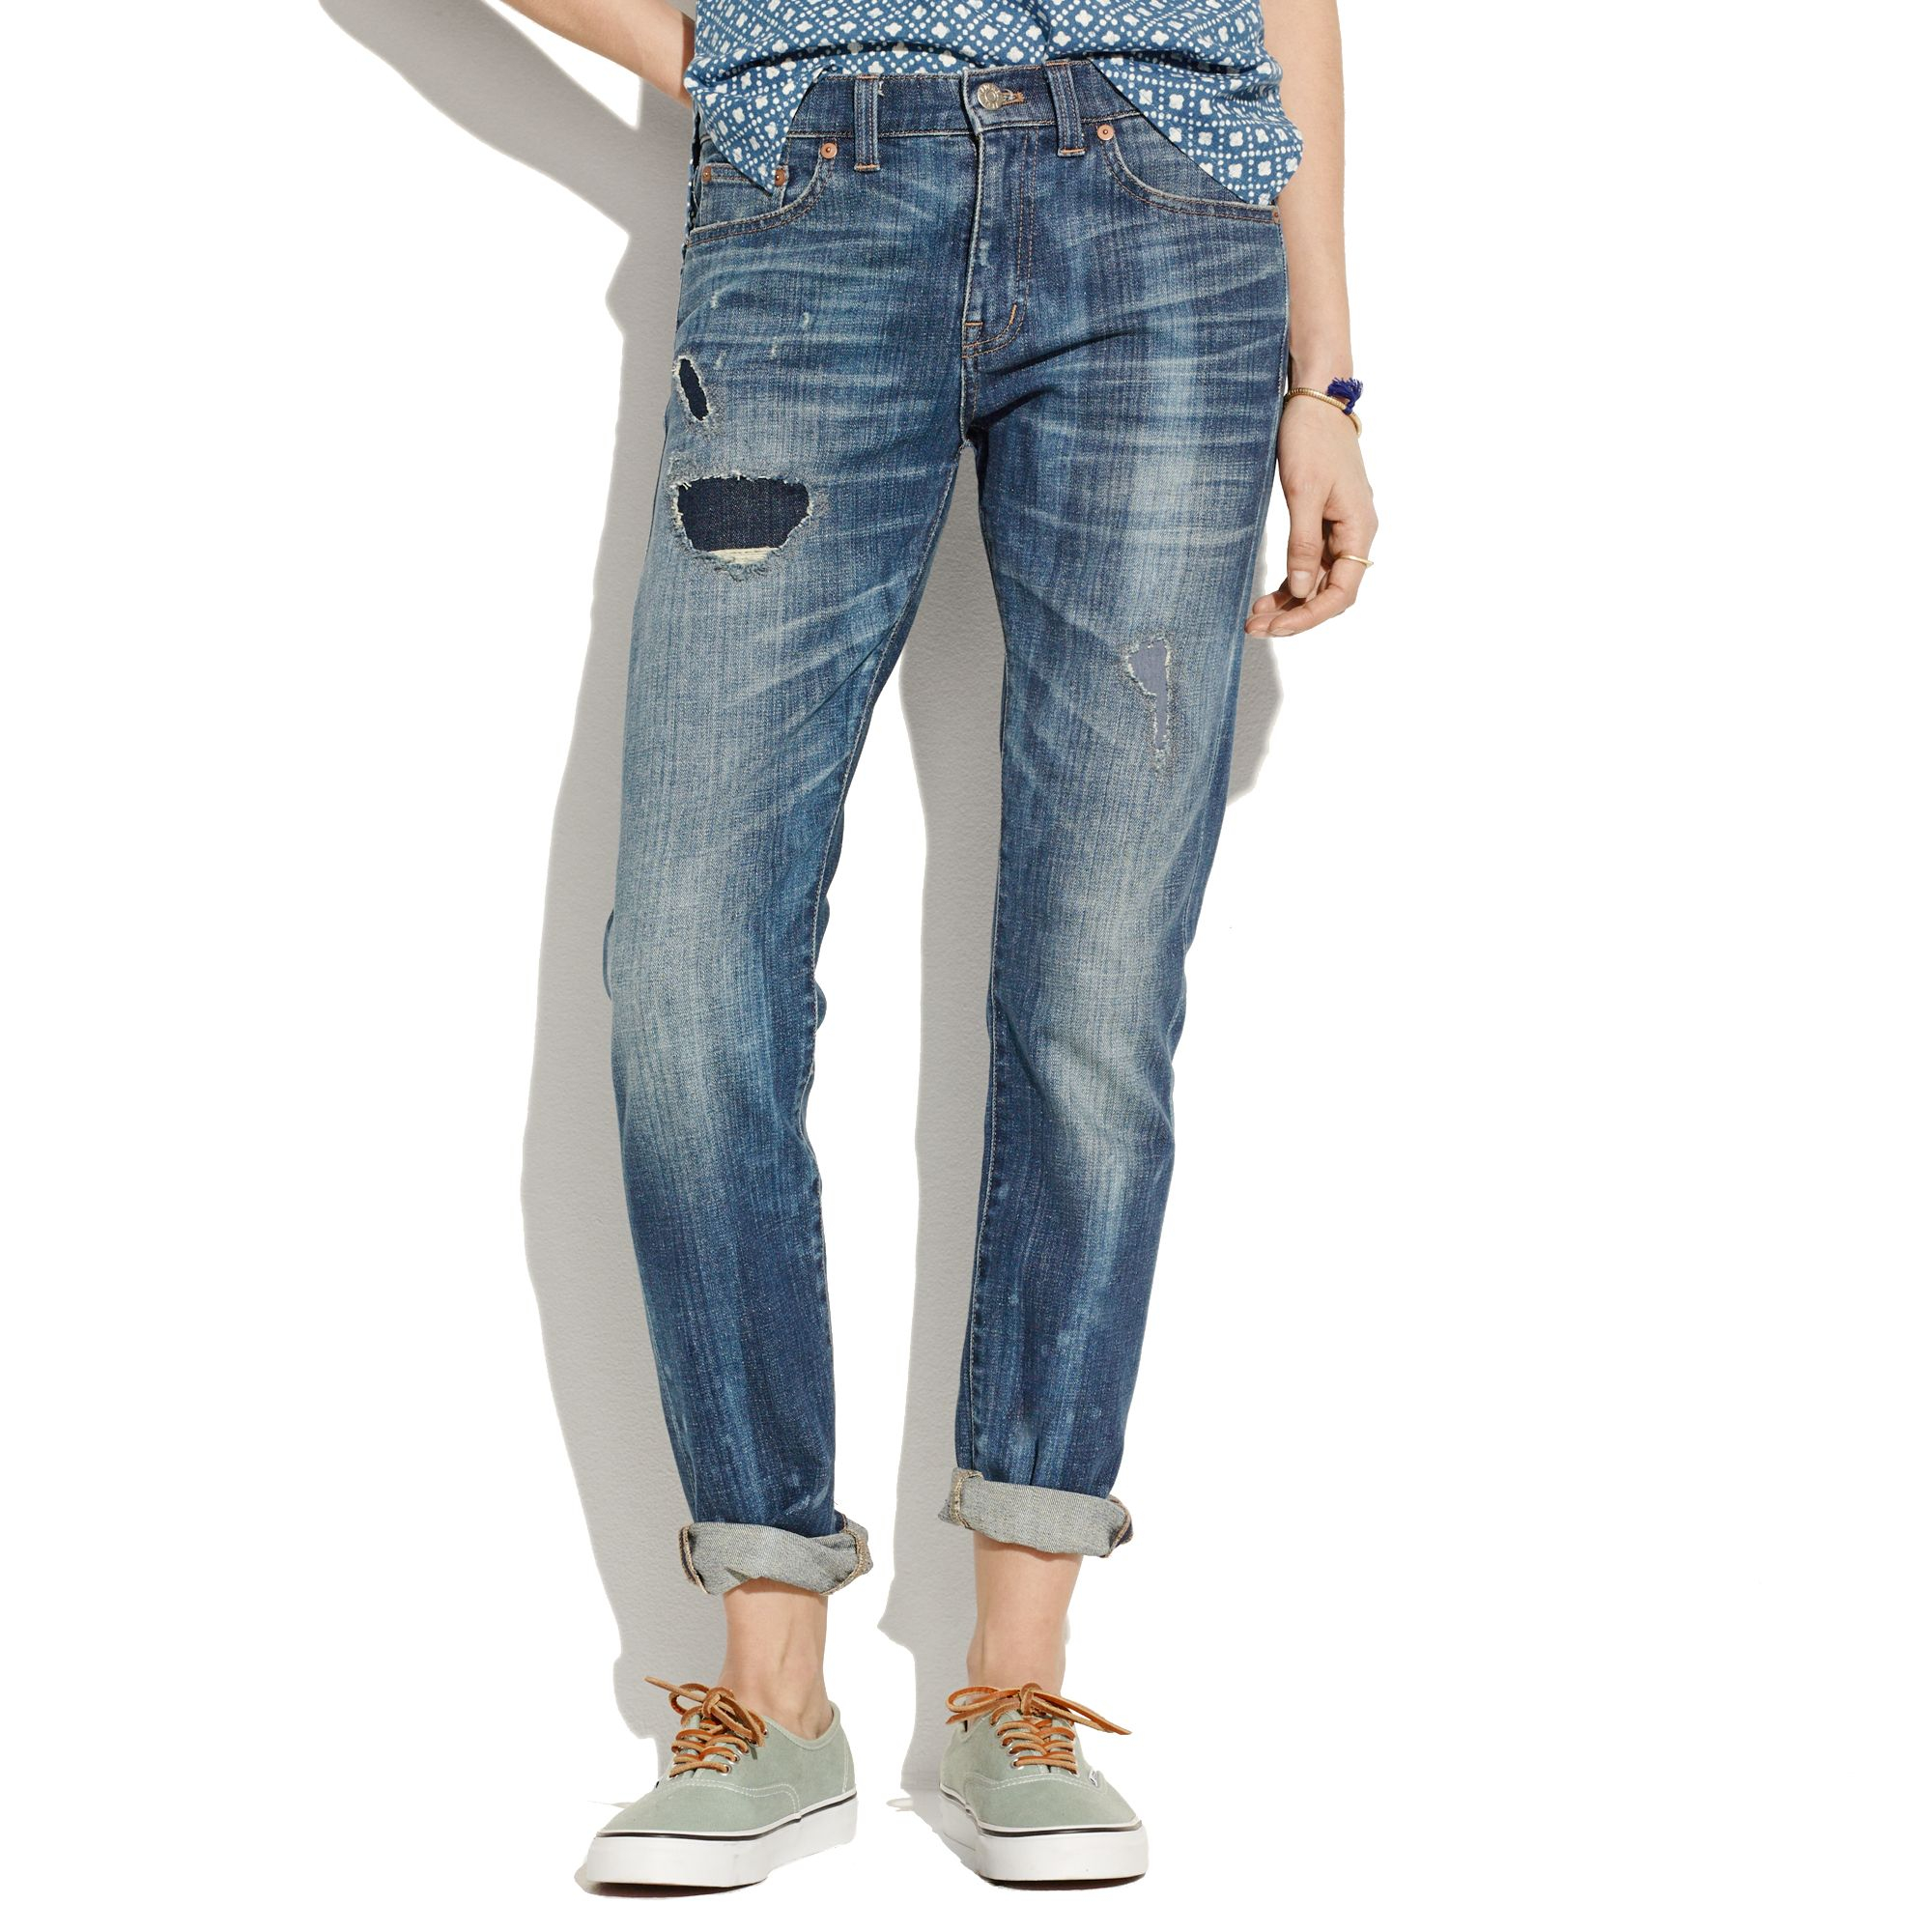 select for genuine high quality materials Discover Women's Blue The Slim Boyjean: Rip And Repair Edition